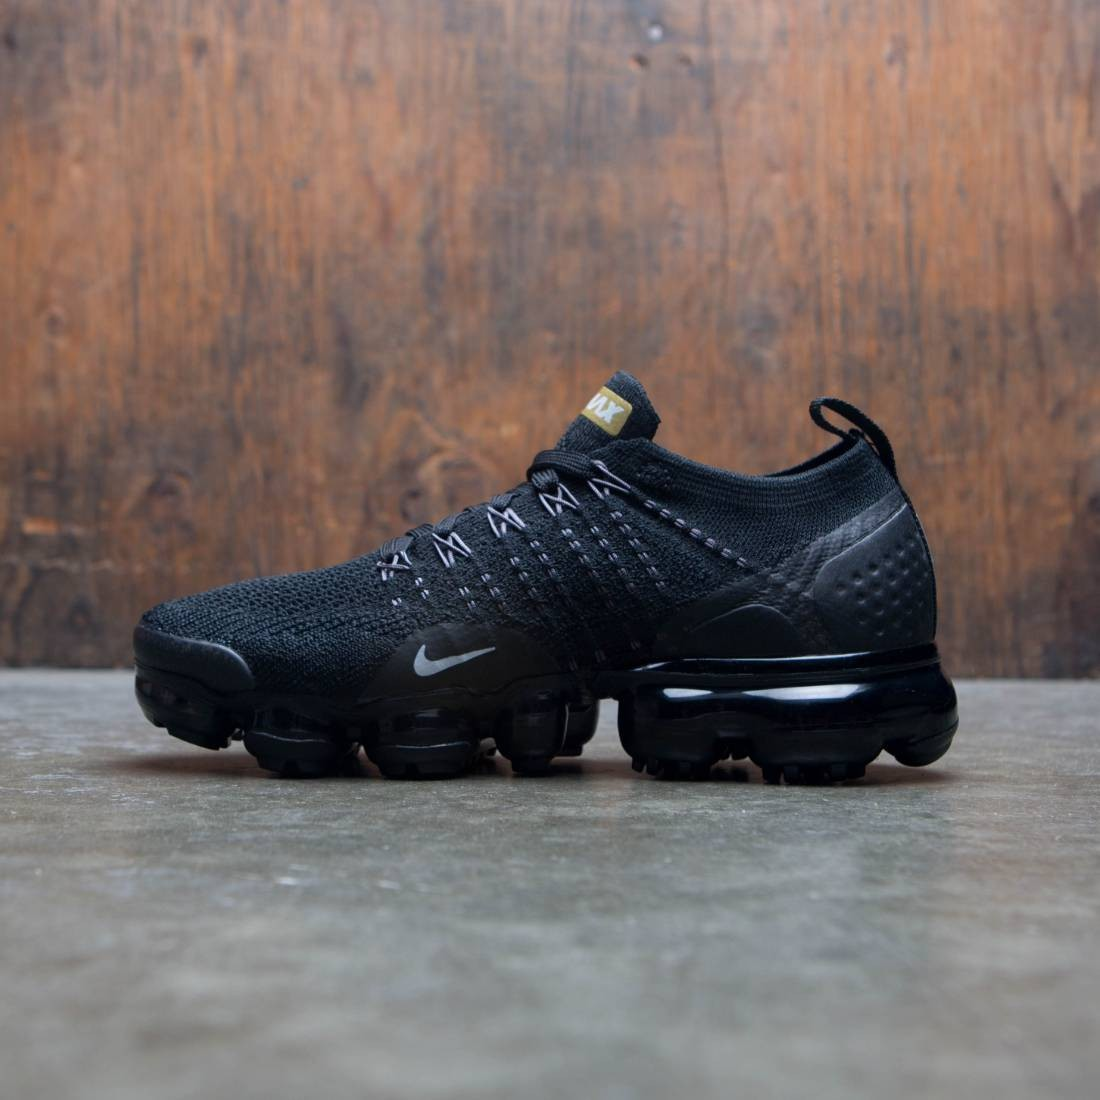 new concept 6a061 3a549 Nike Women Air Vapormax Flyknit 2 (black / metallic gold-mtlc platinum)